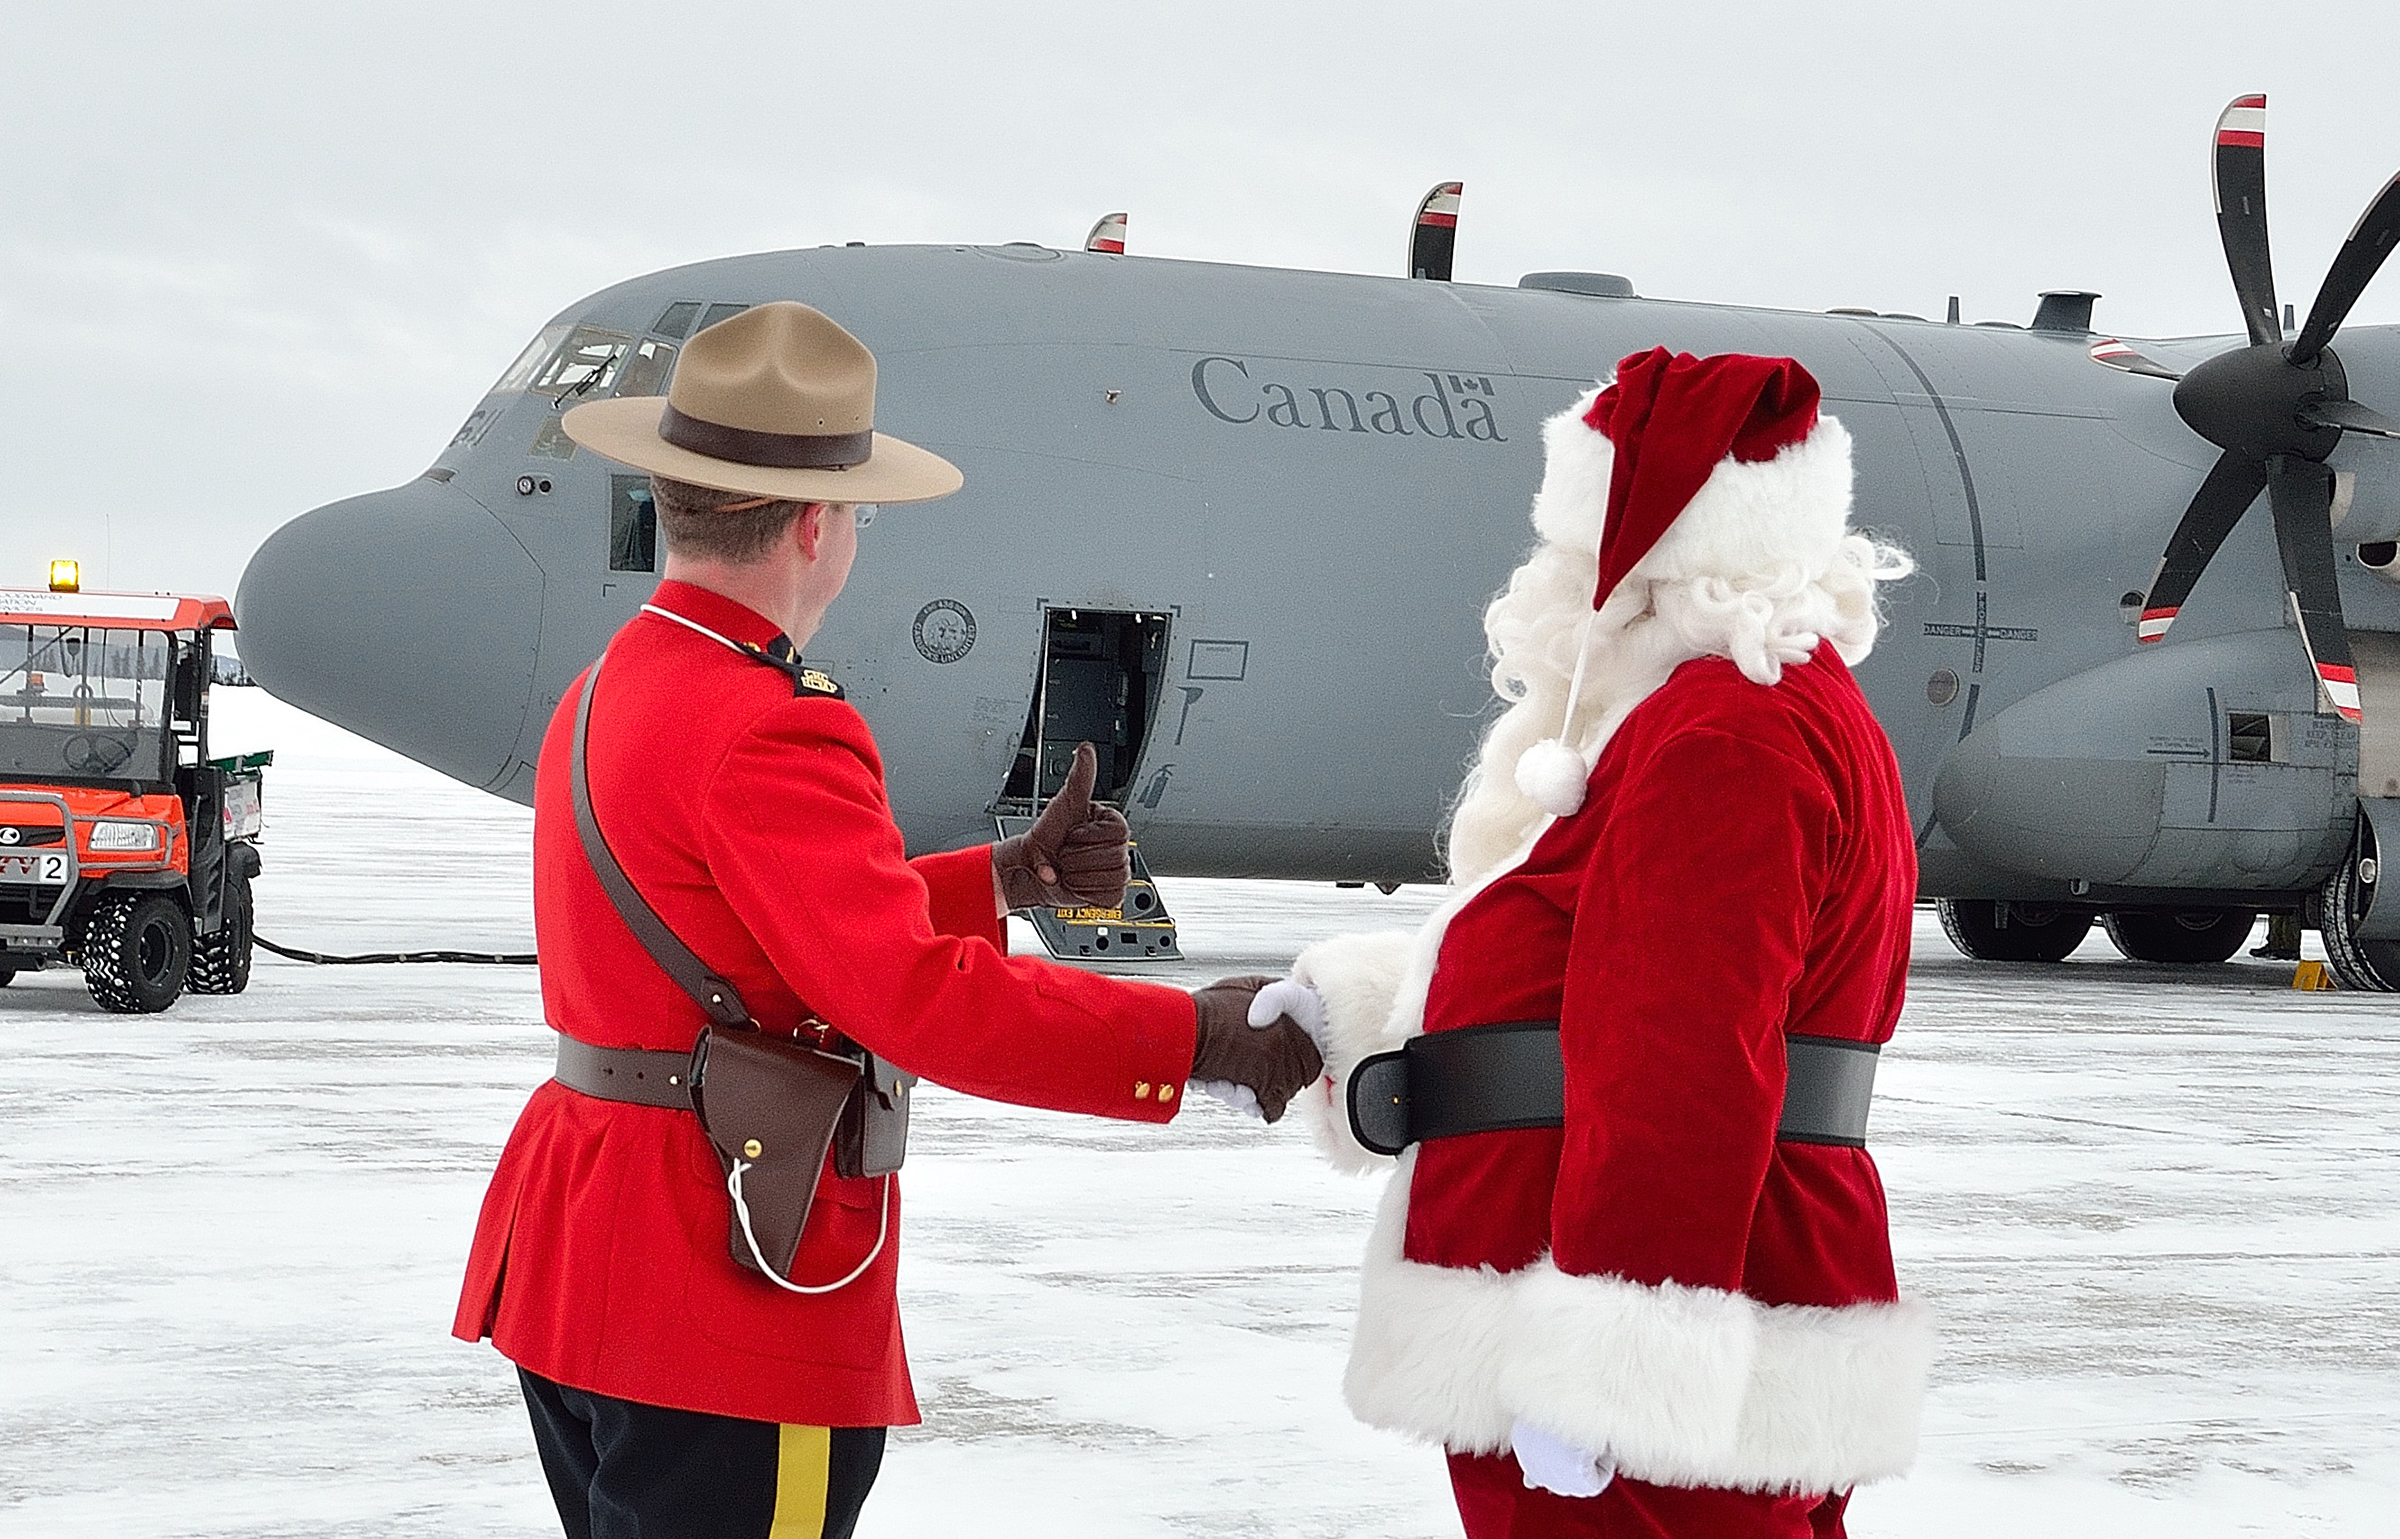 A member of the RCMP and Santa Claus shake hands in front of a large military cargo aircraft. The RCMP member gives a thumbs up signal.